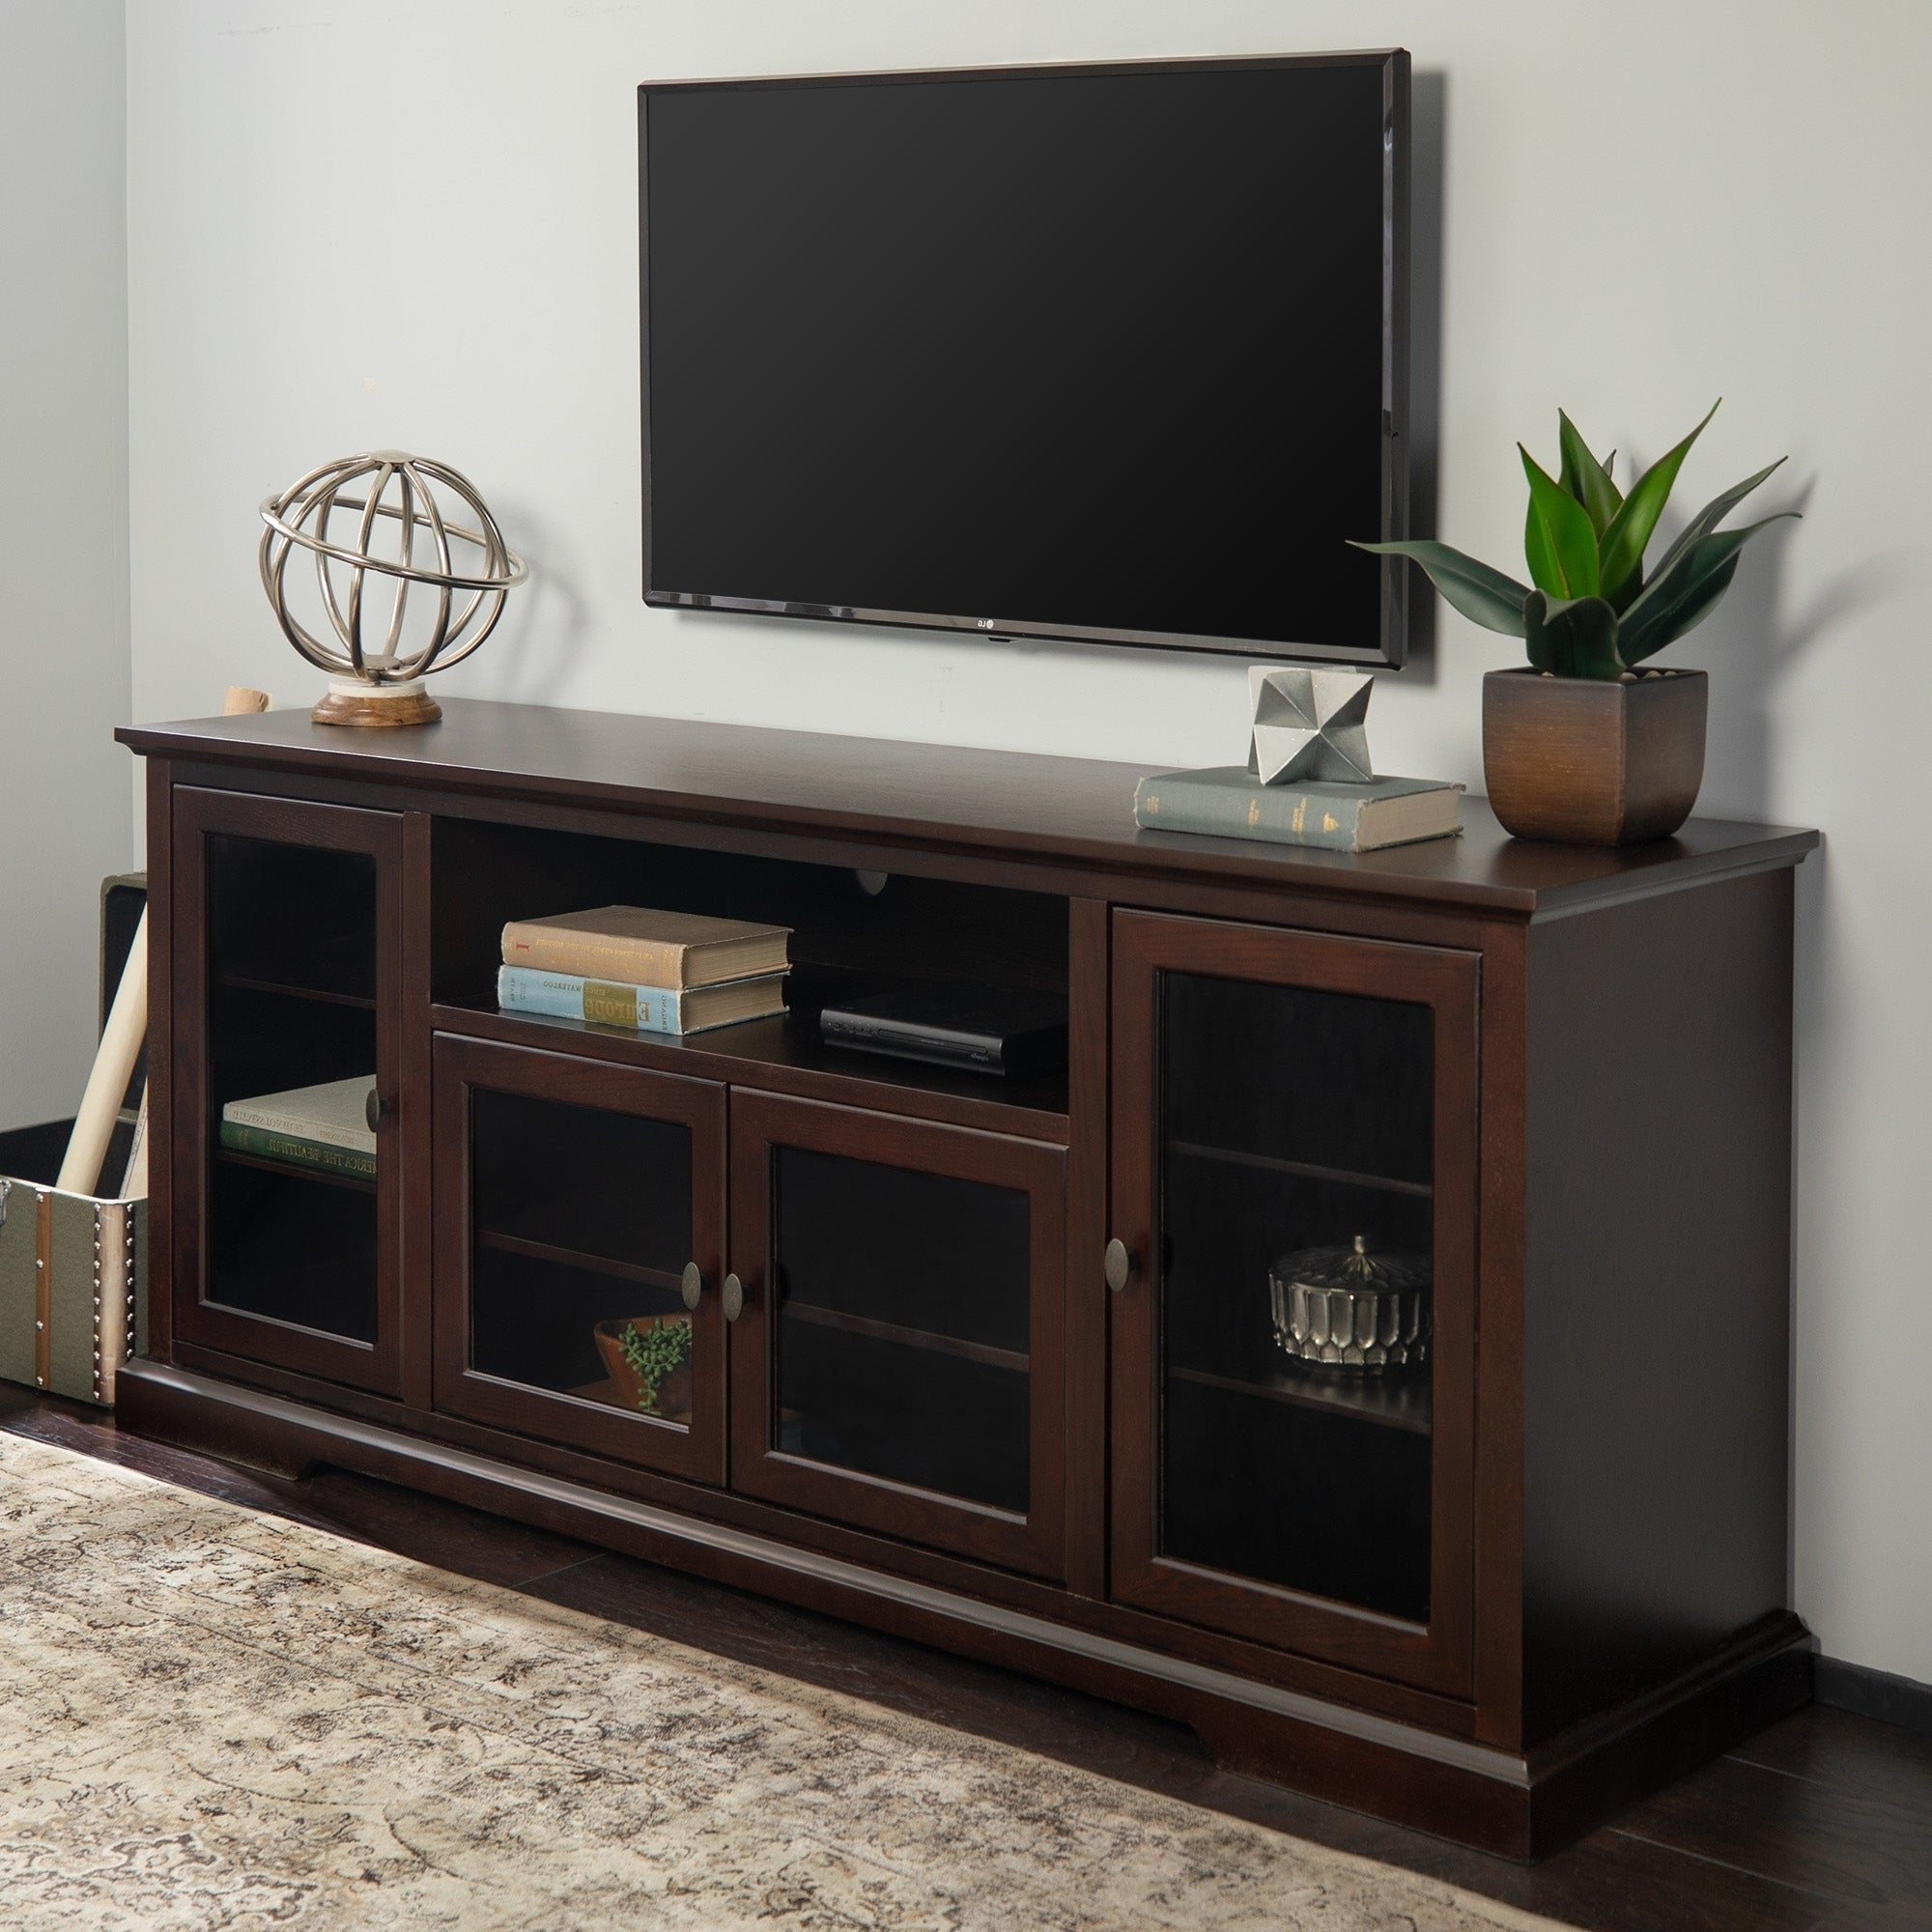 """Widely Used Mainor Tv Stands For Tvs Up To 70"""" Regarding Middlebrook Designs Beaverhead 70 Inch Espresso Highboy Tv (View 15 of 20)"""